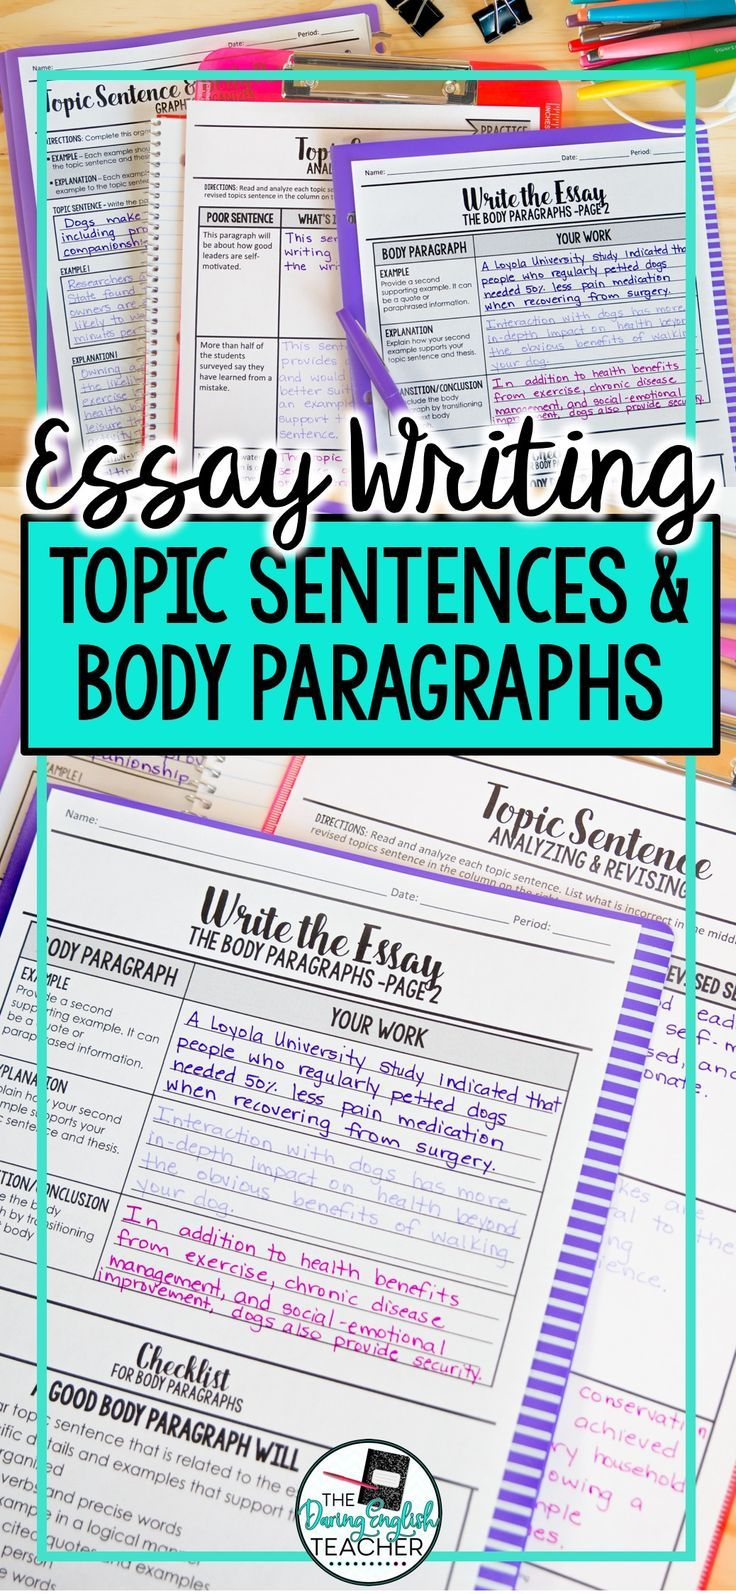 0010 Topic Sentence and Body Paragraph Essay Writing Topic